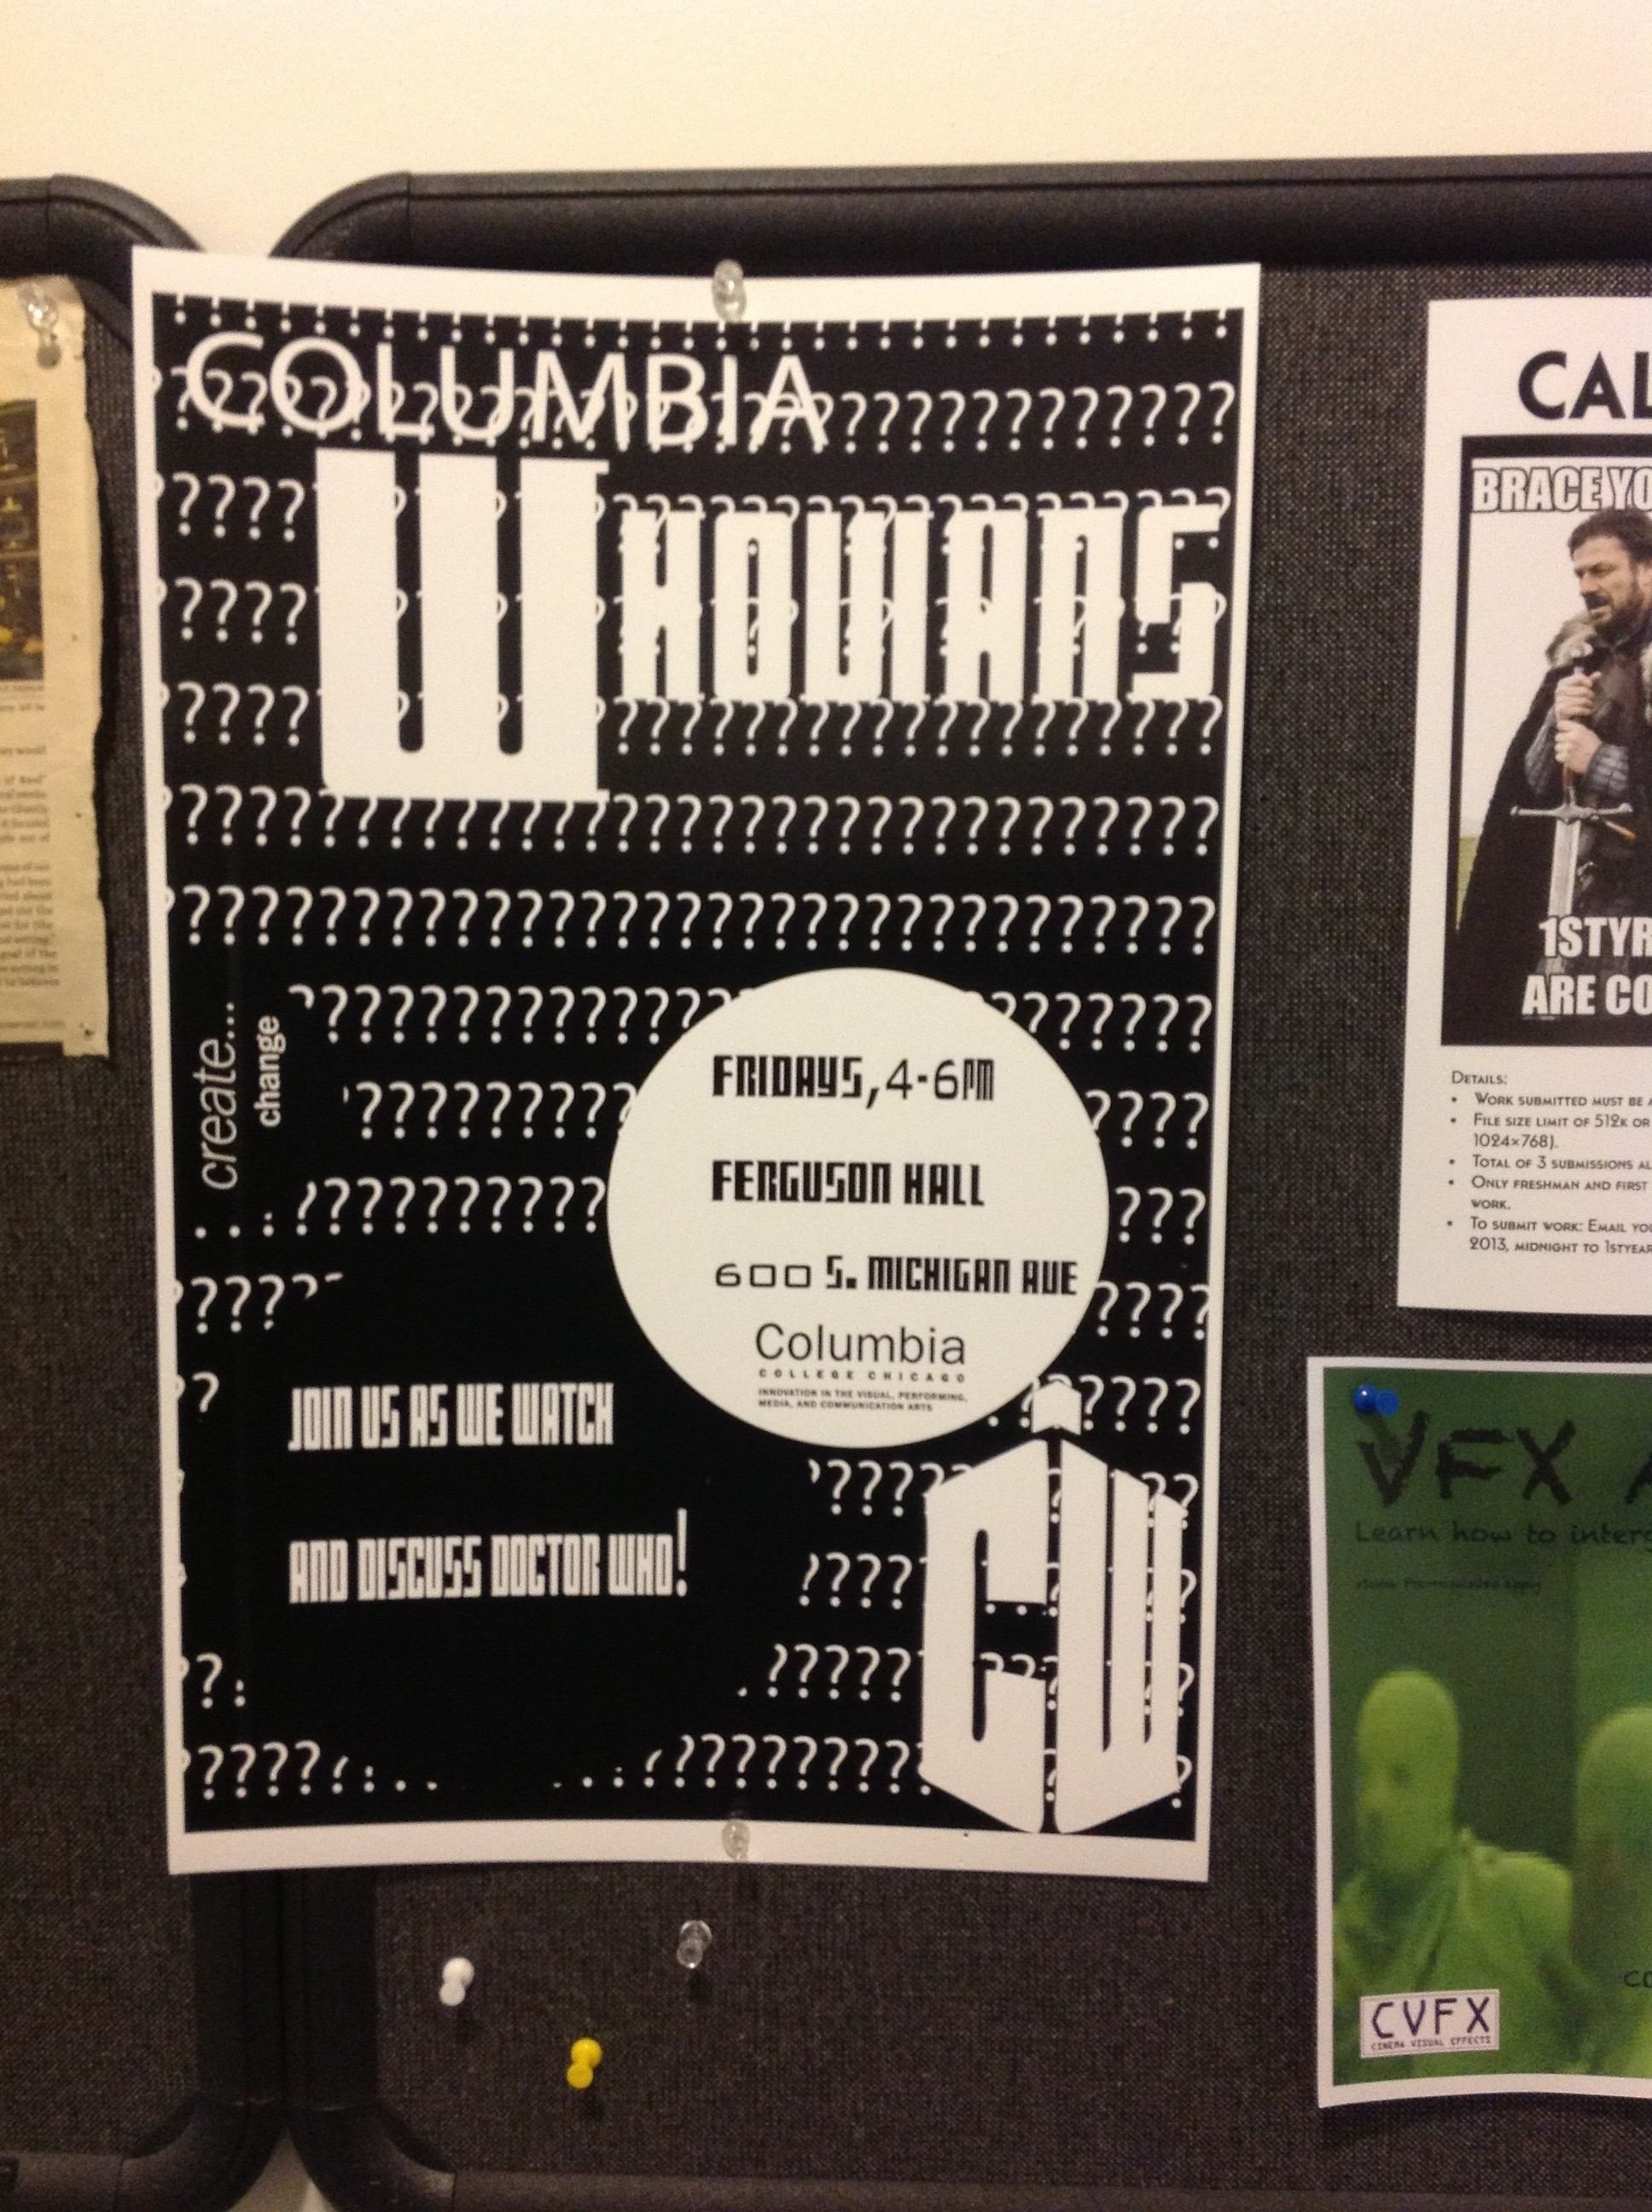 Wibbly, Wobbly, Timey-Wimey Fun at Columbia College Chicago